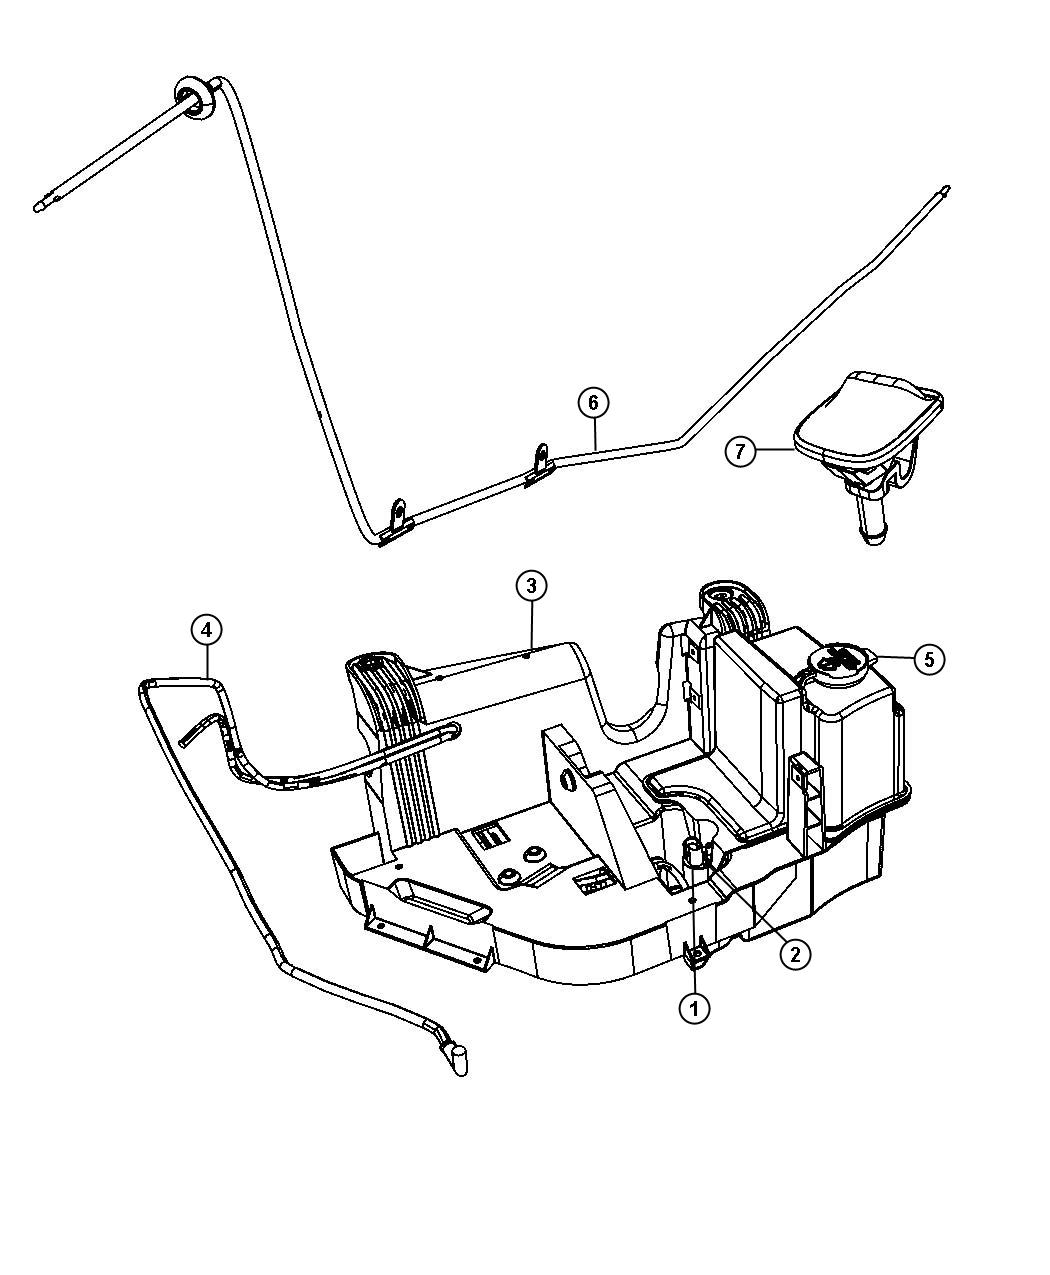 Jeep Wrangler Hose  Windshield Washer  Without  Rear